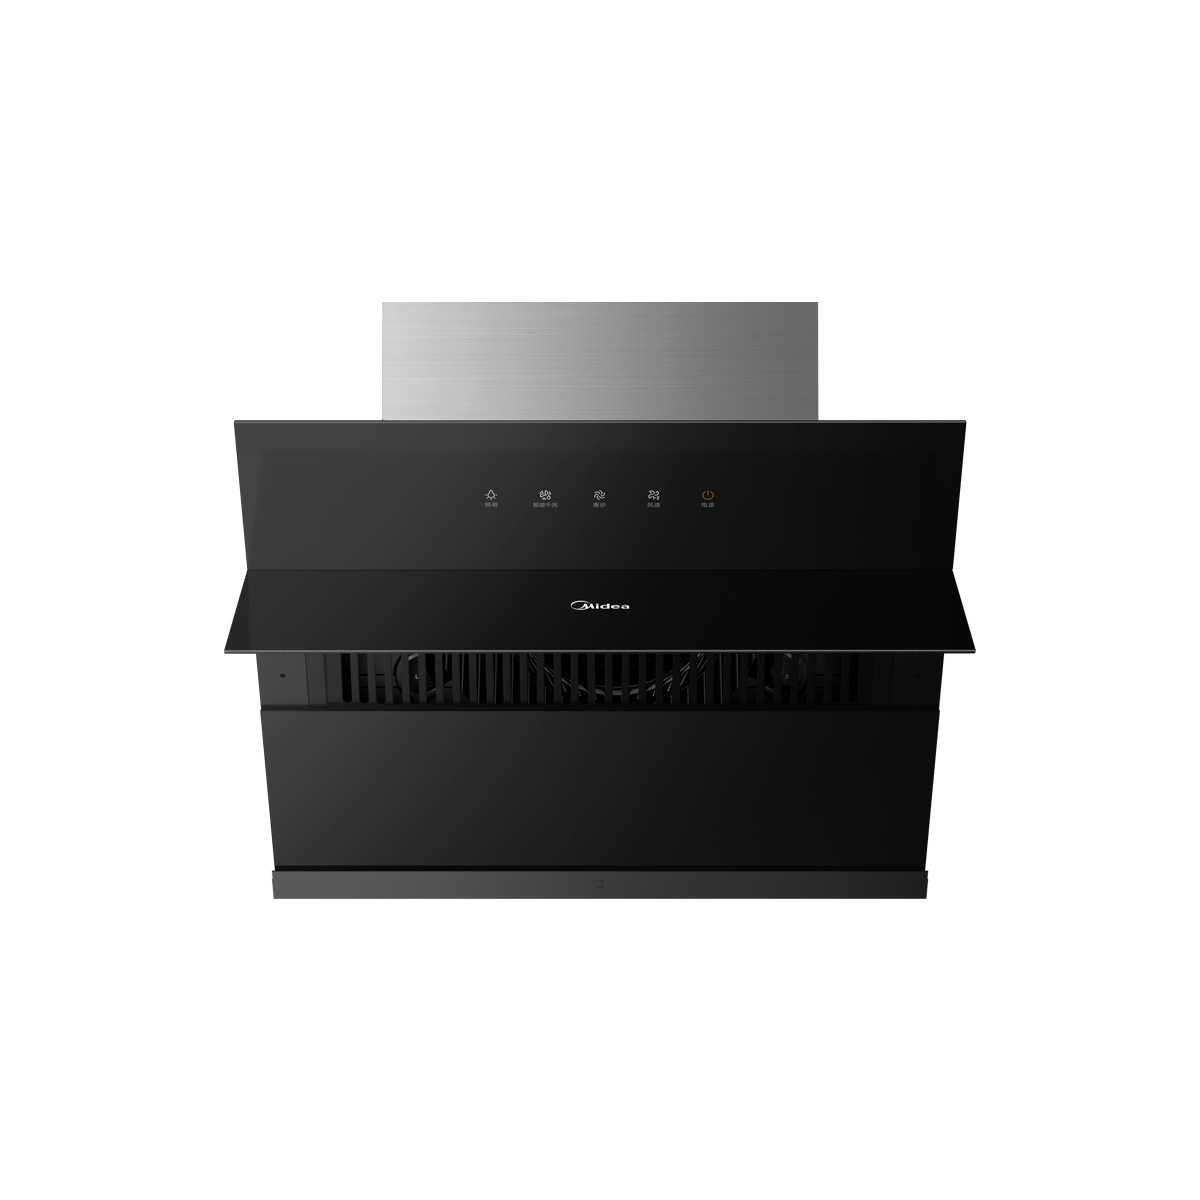 Midea range hood 19m suction 700 small size, one-button opening and closing smart dry cleaning CXW-2